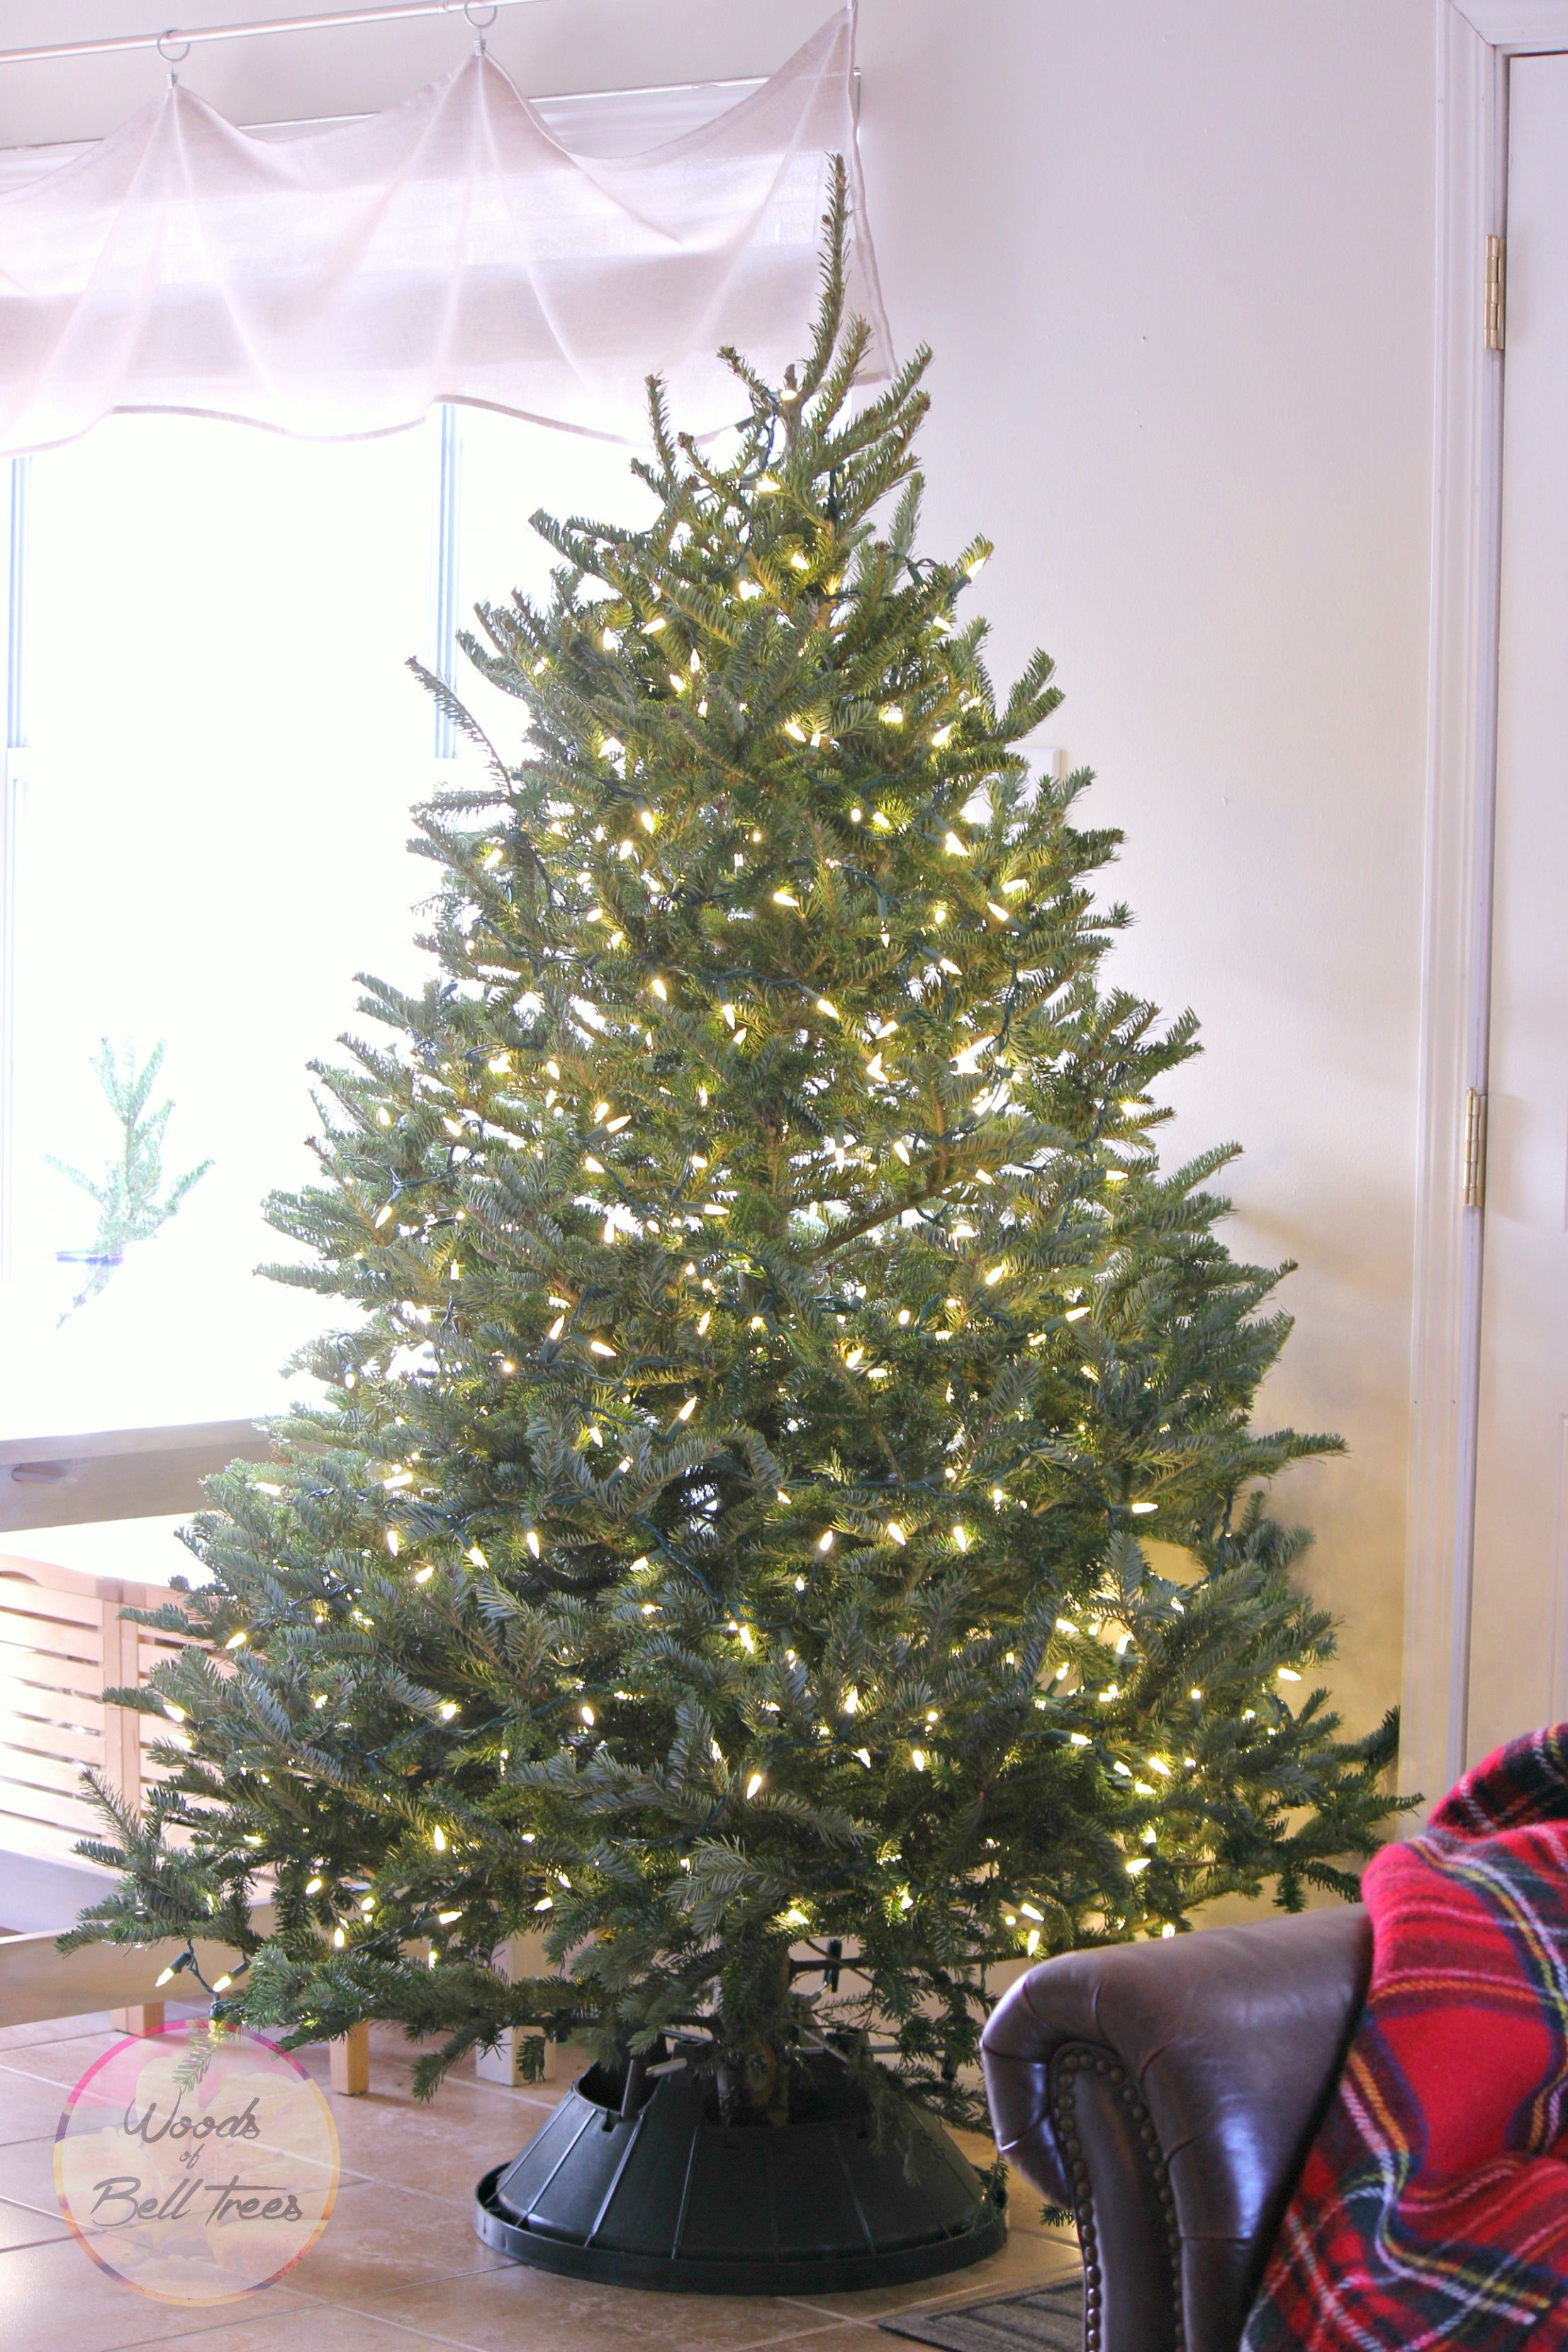 The scent of a Christmas tree brings back memories of holidays past.